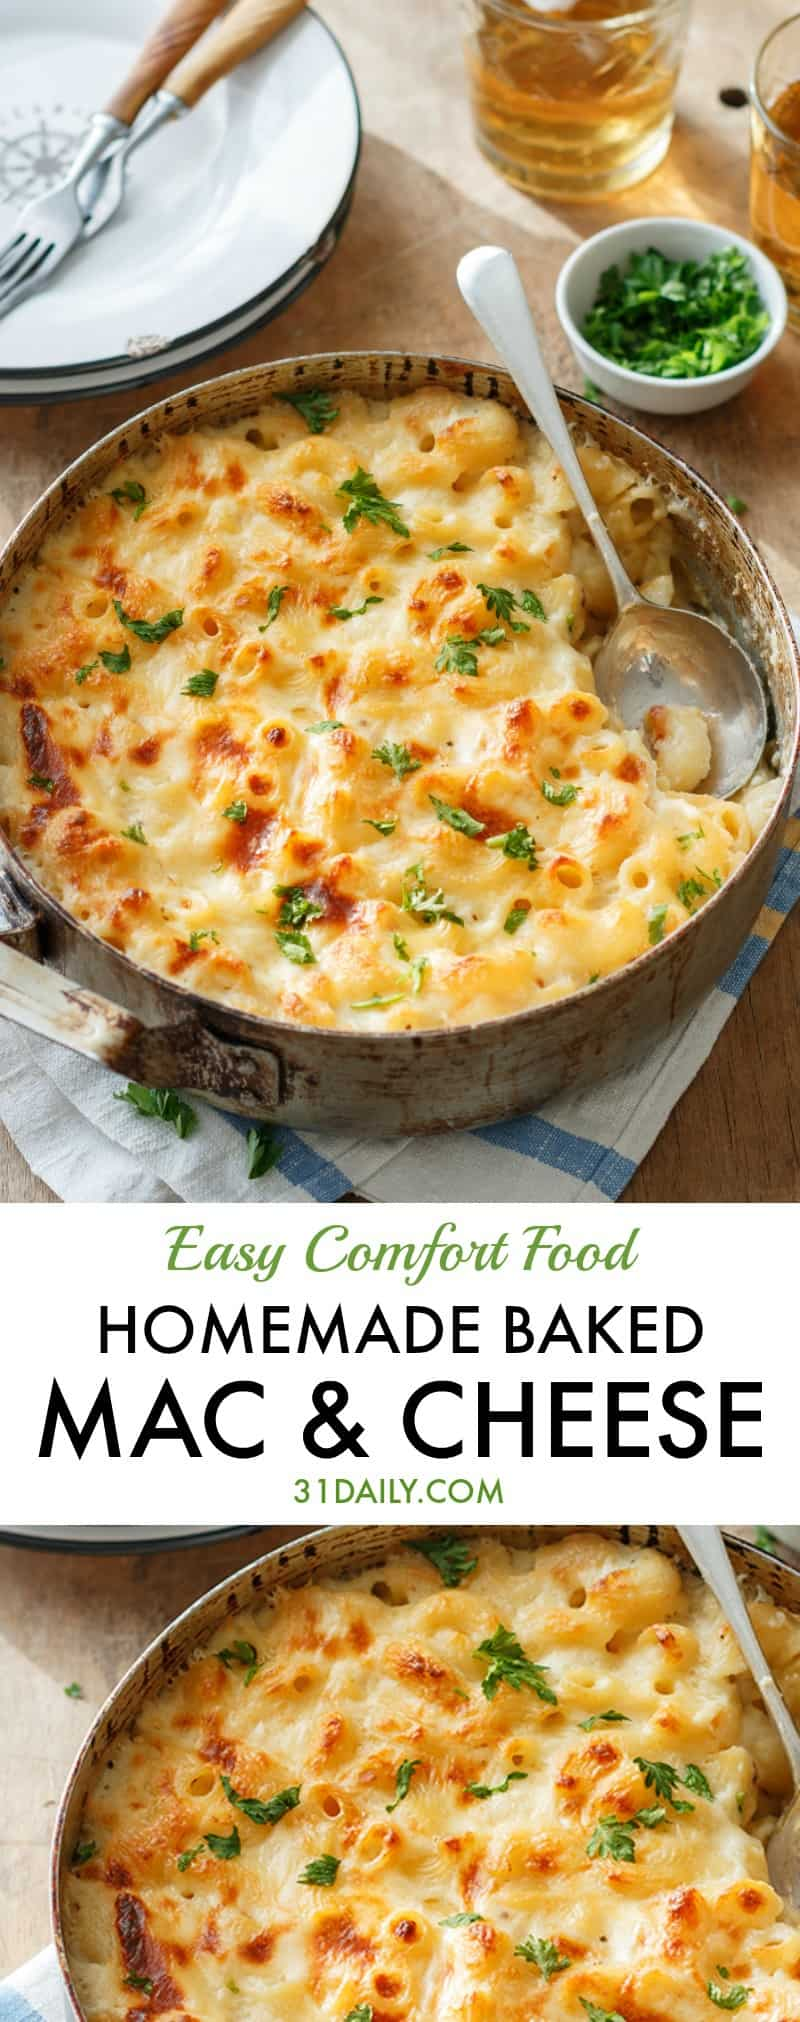 Easy Homemade Baked Mac and Cheese | 31Daily.com